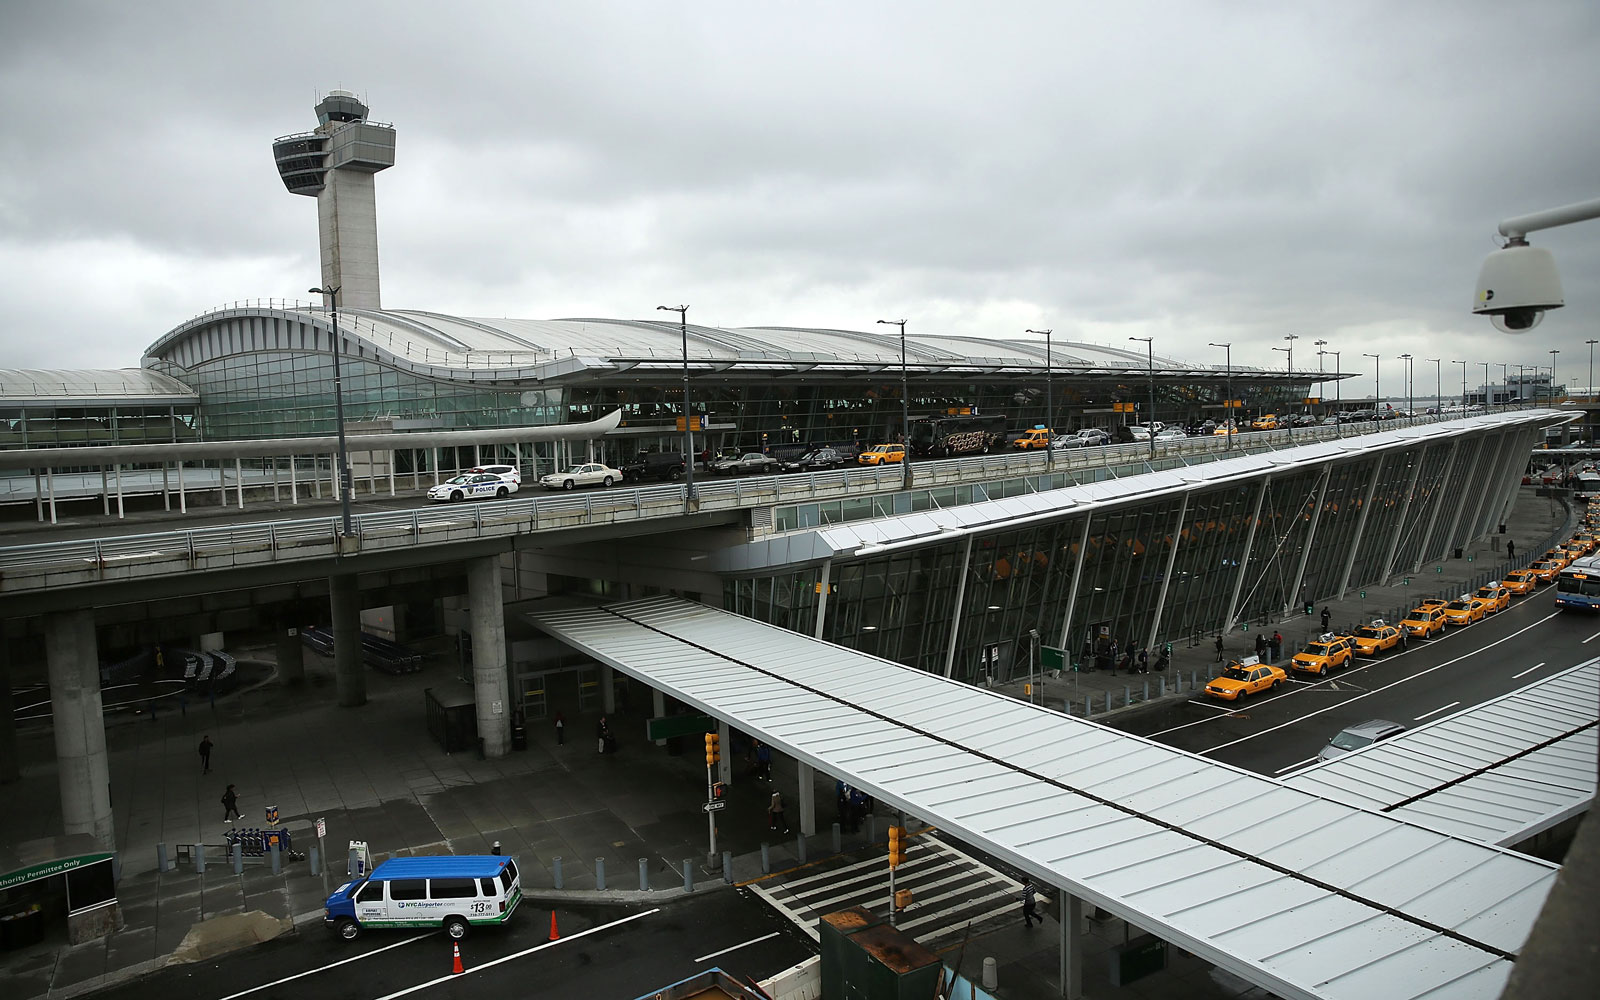 America's best and worst airports: New York (JFK)